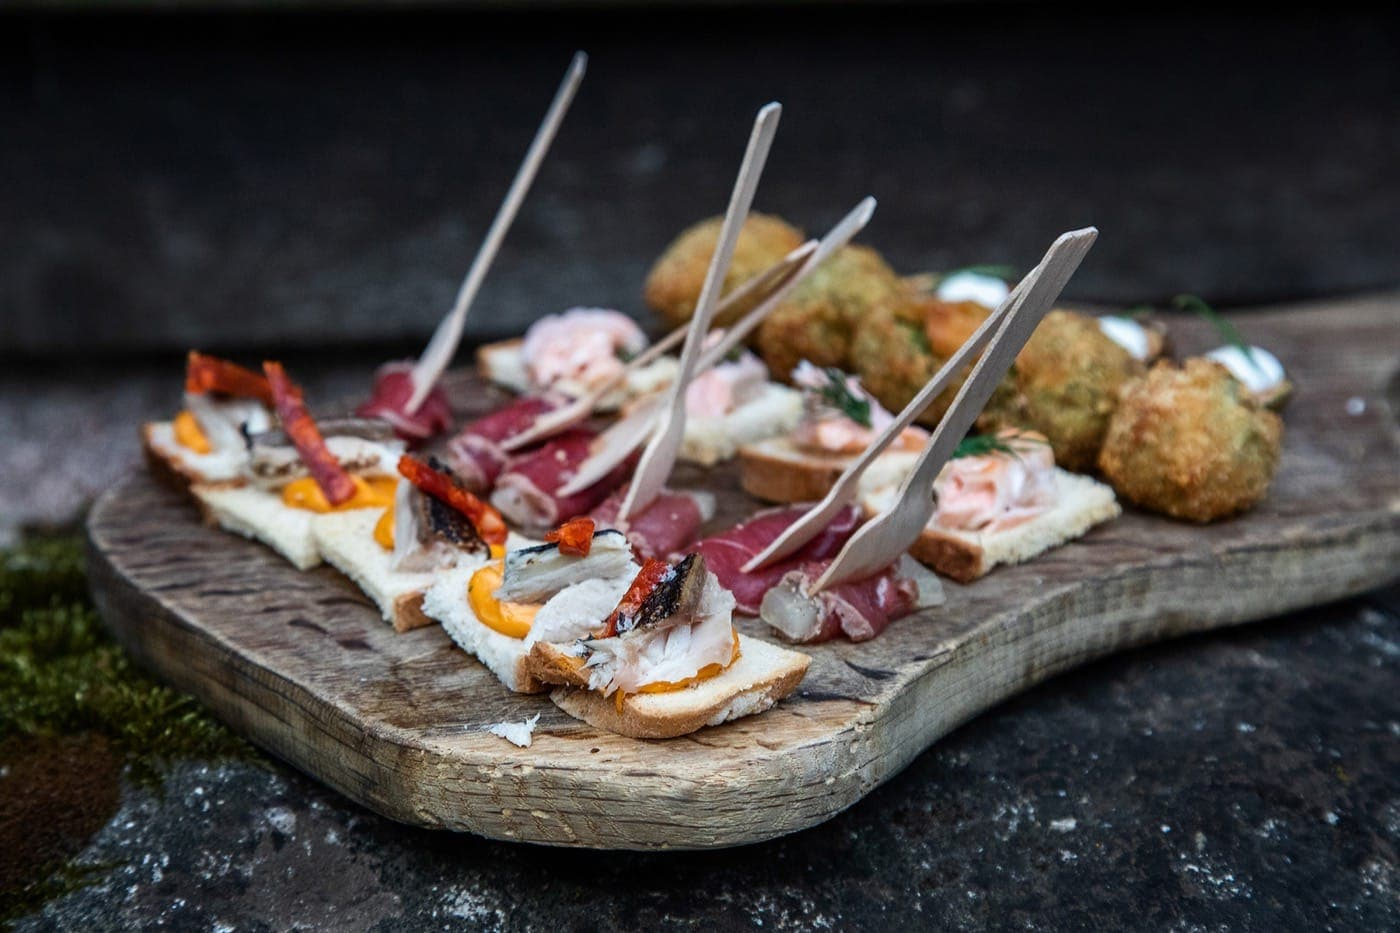 Feast-It-Veni-and-Son-Street-Food-Venison-Event-Catering-Mobile-Caterer-British-Food-Book-Now-two